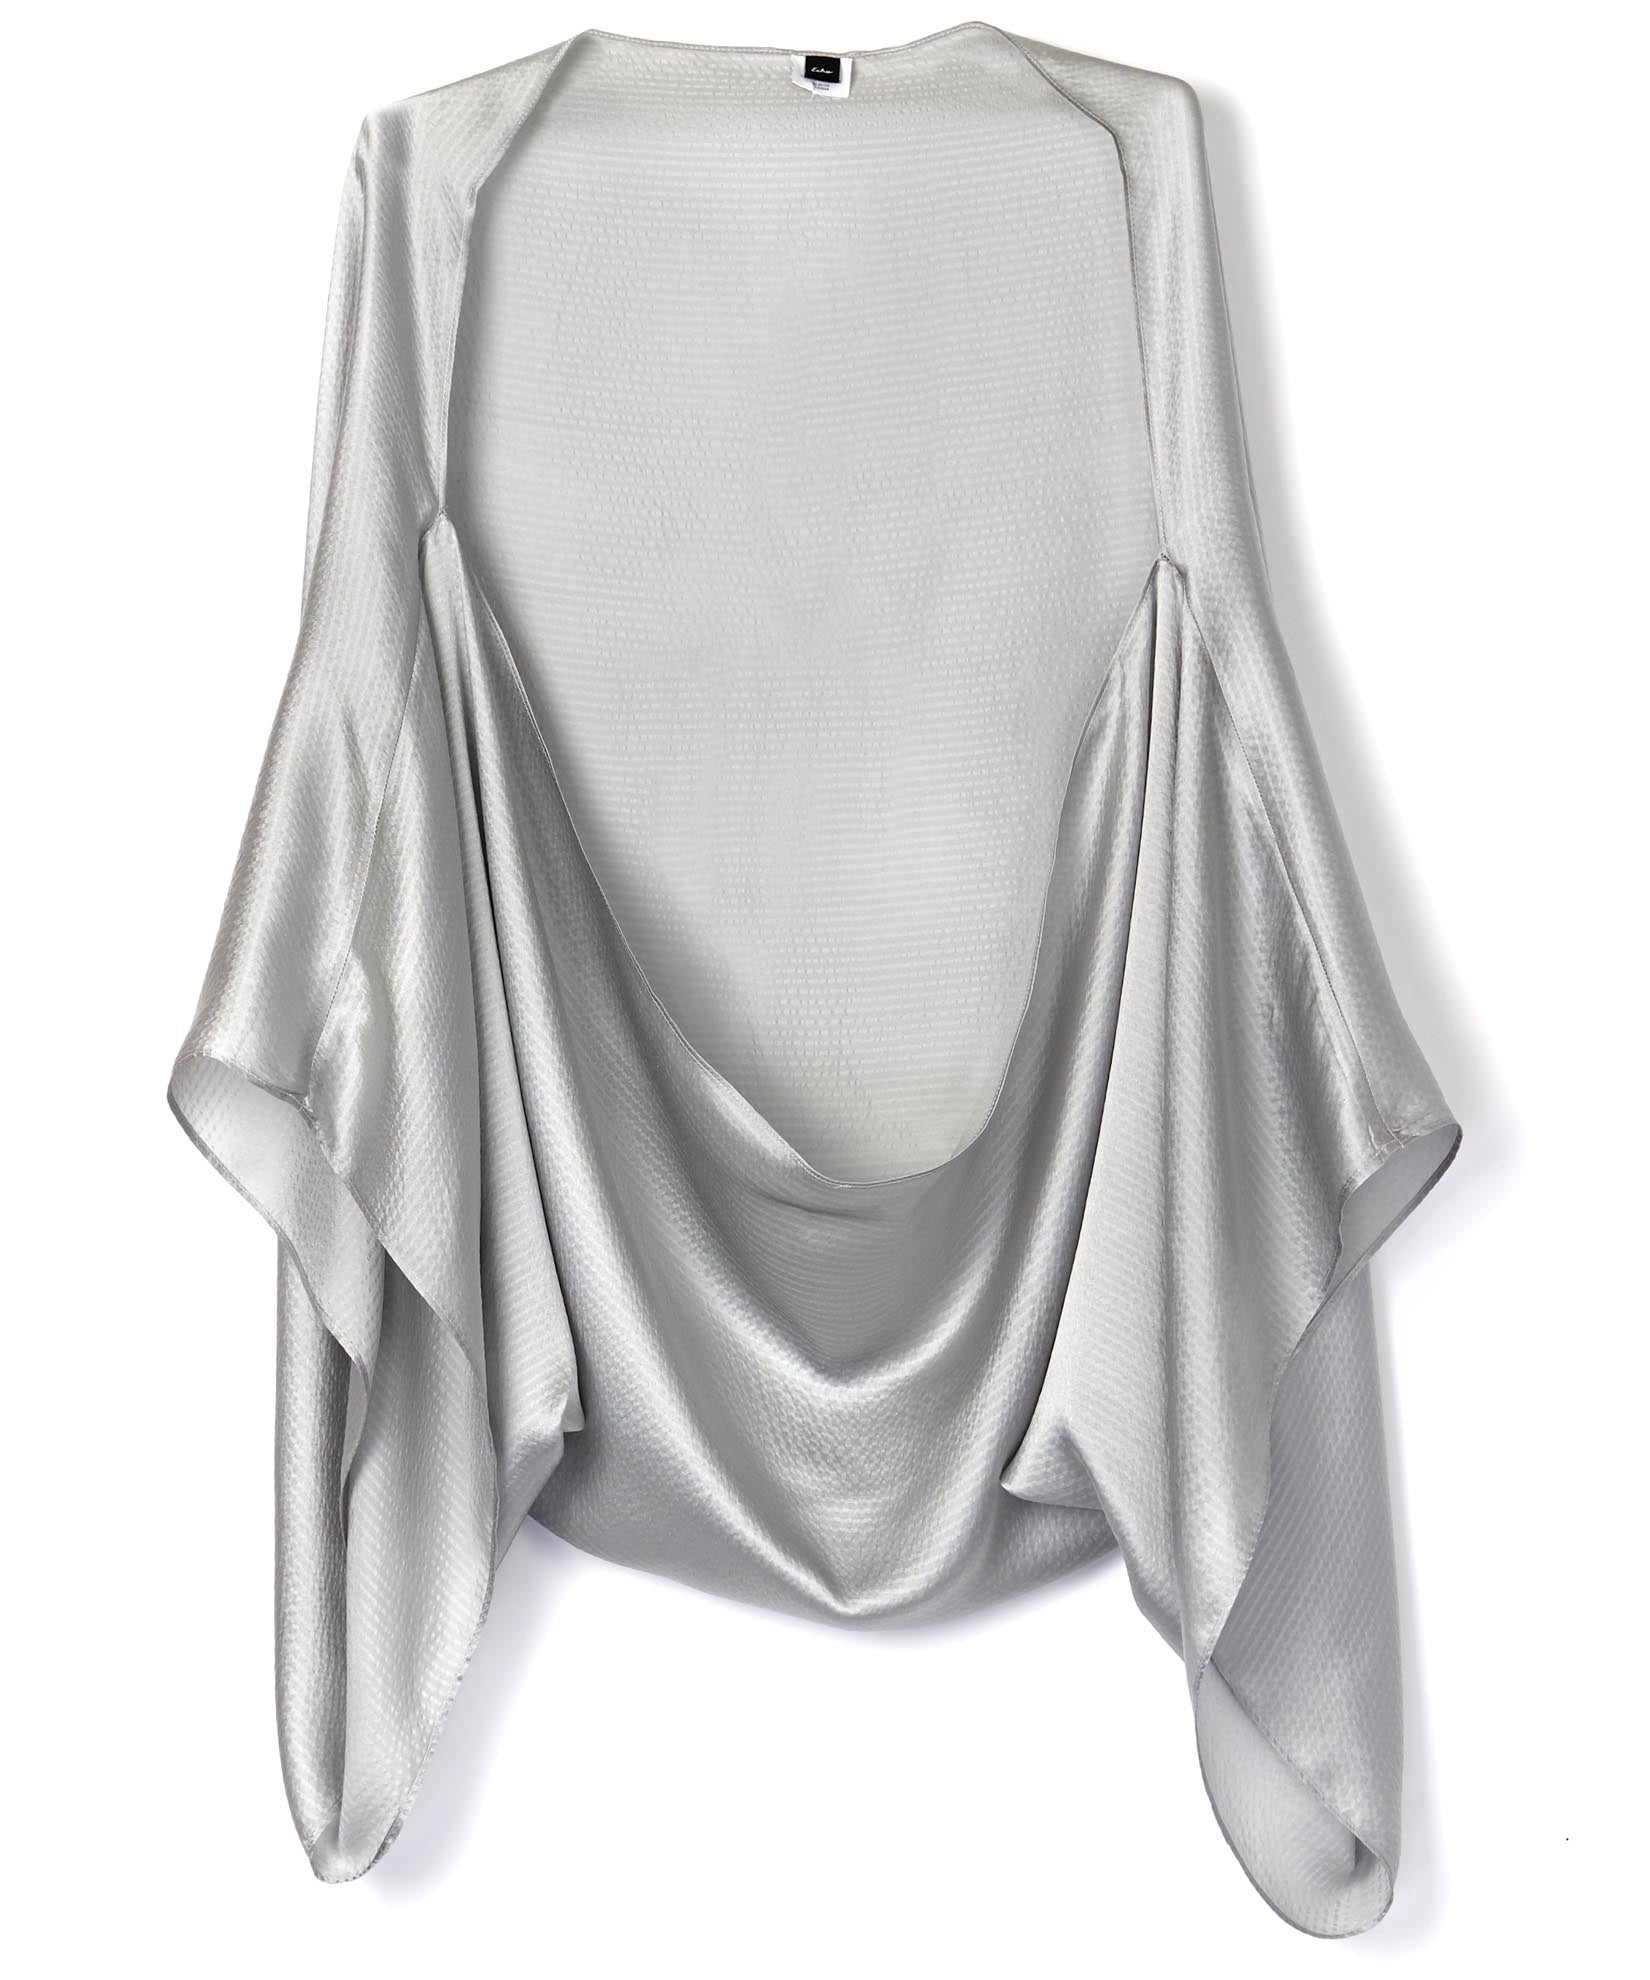 Lt Shadow - Hammered Silk Cocoon